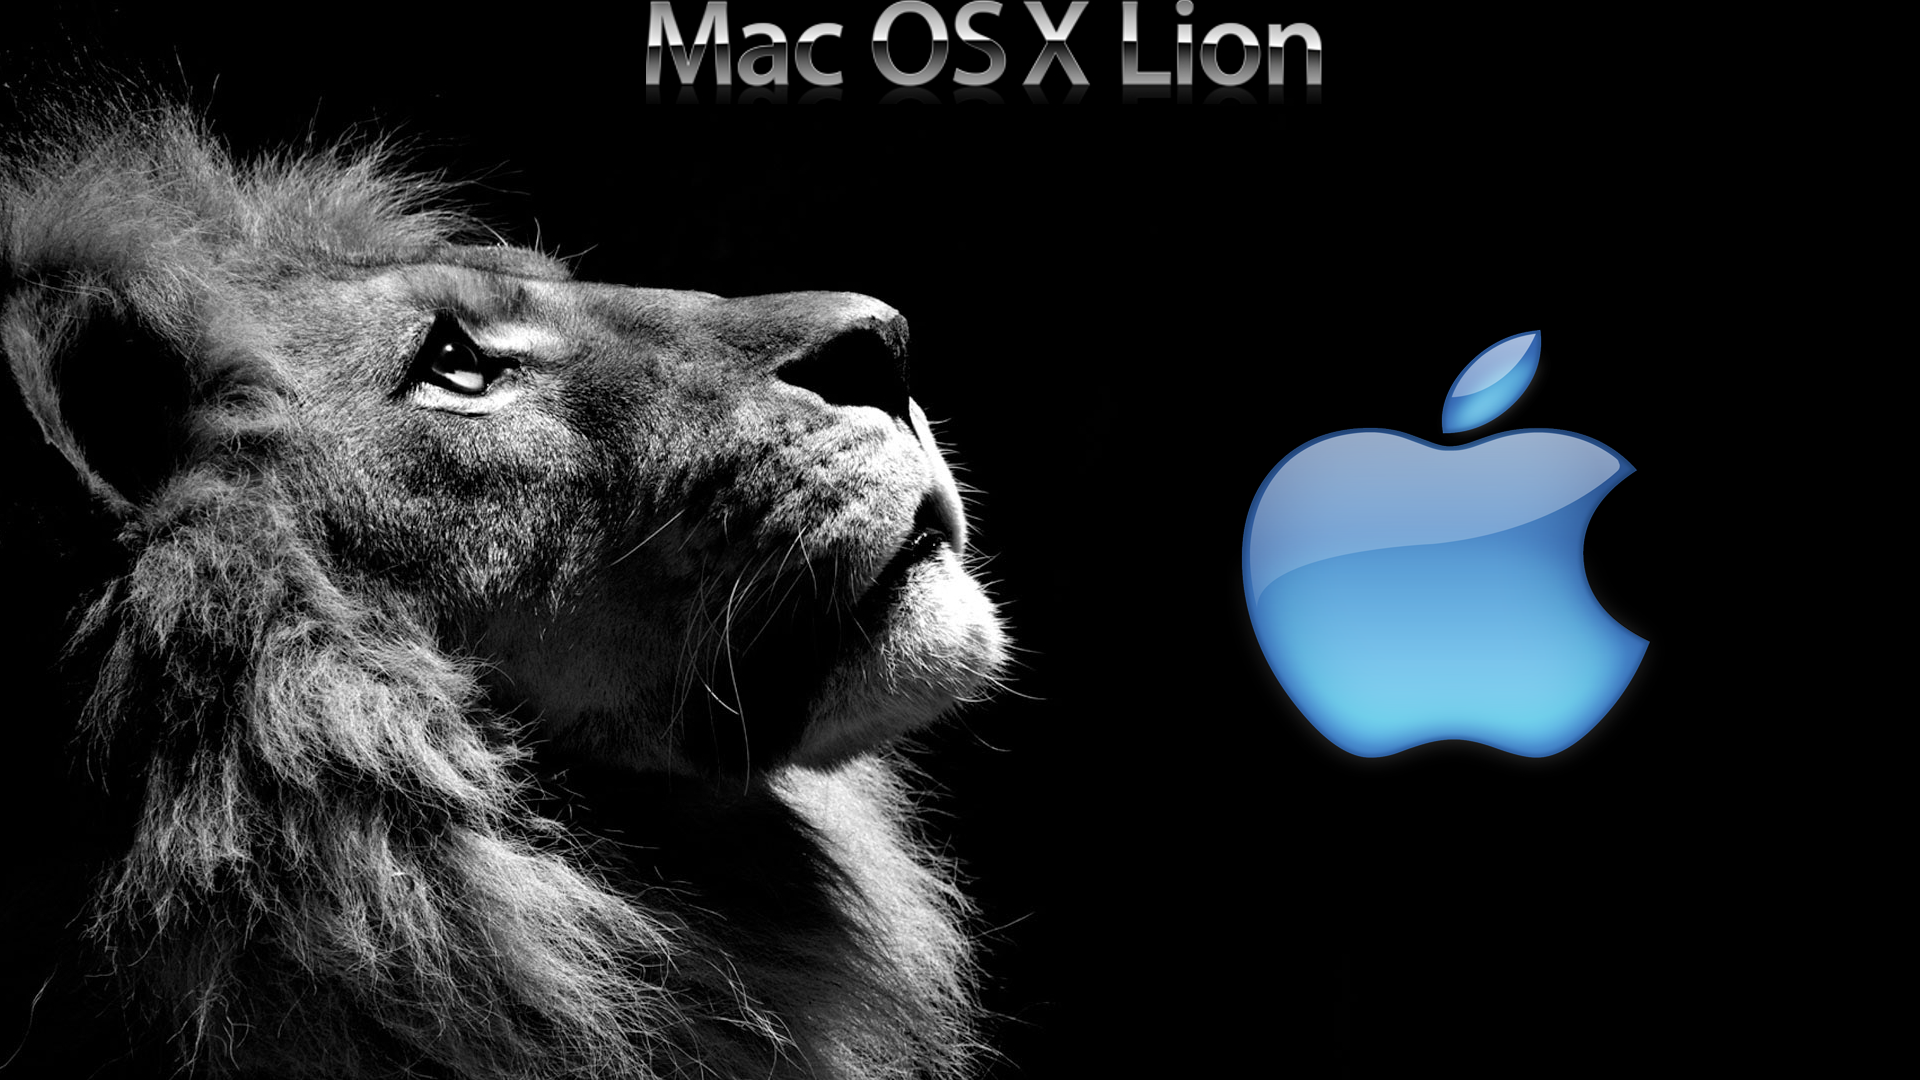 1920x1200px os x lion wallpaper - wallpapersafari